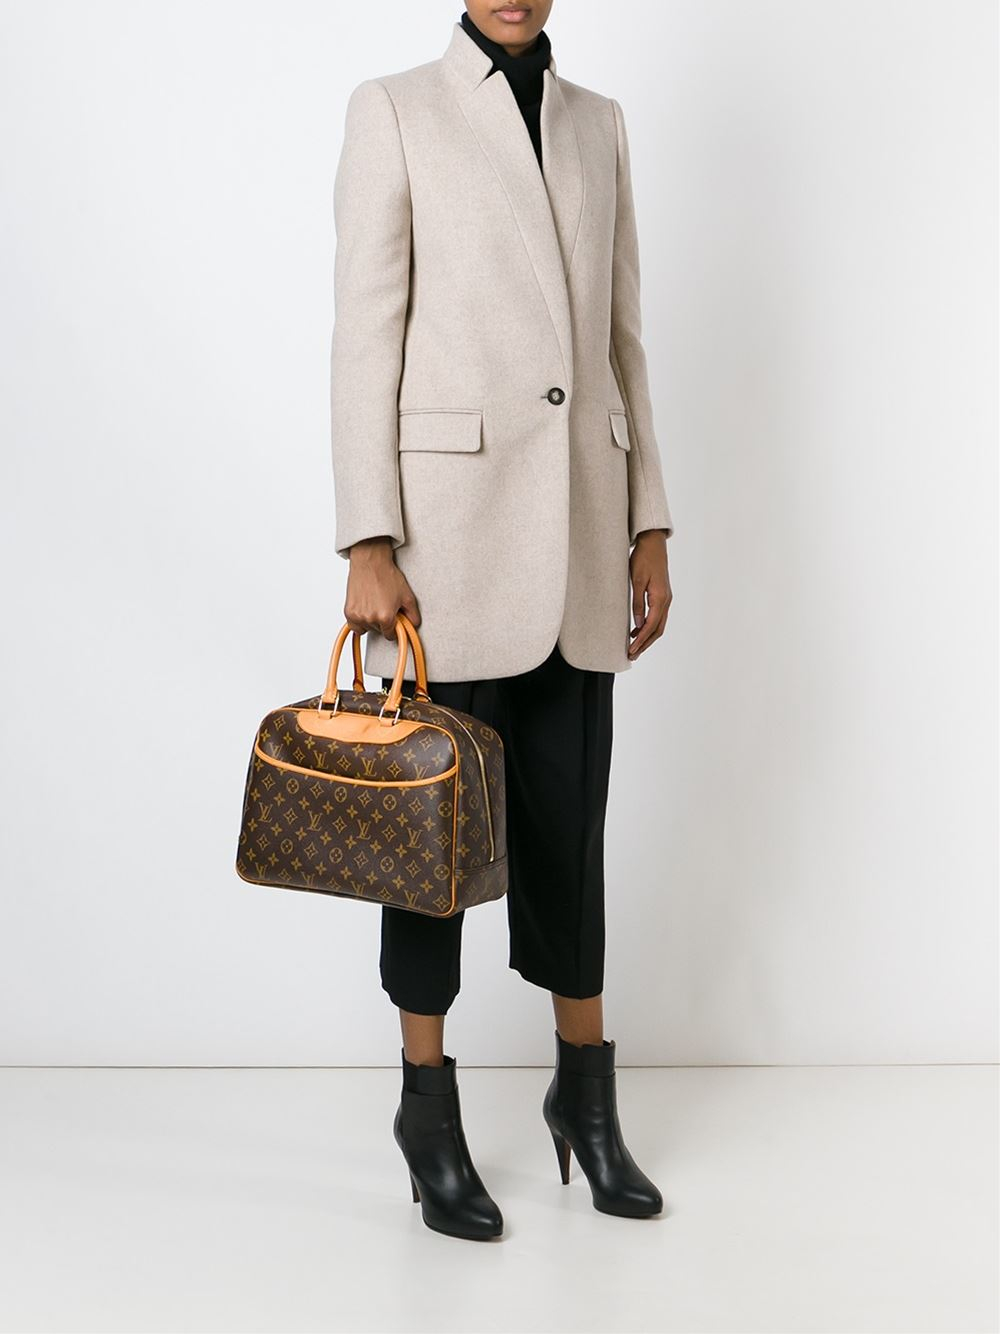 Lyst Louis Vuitton Deauville Luggage Bag In Brown